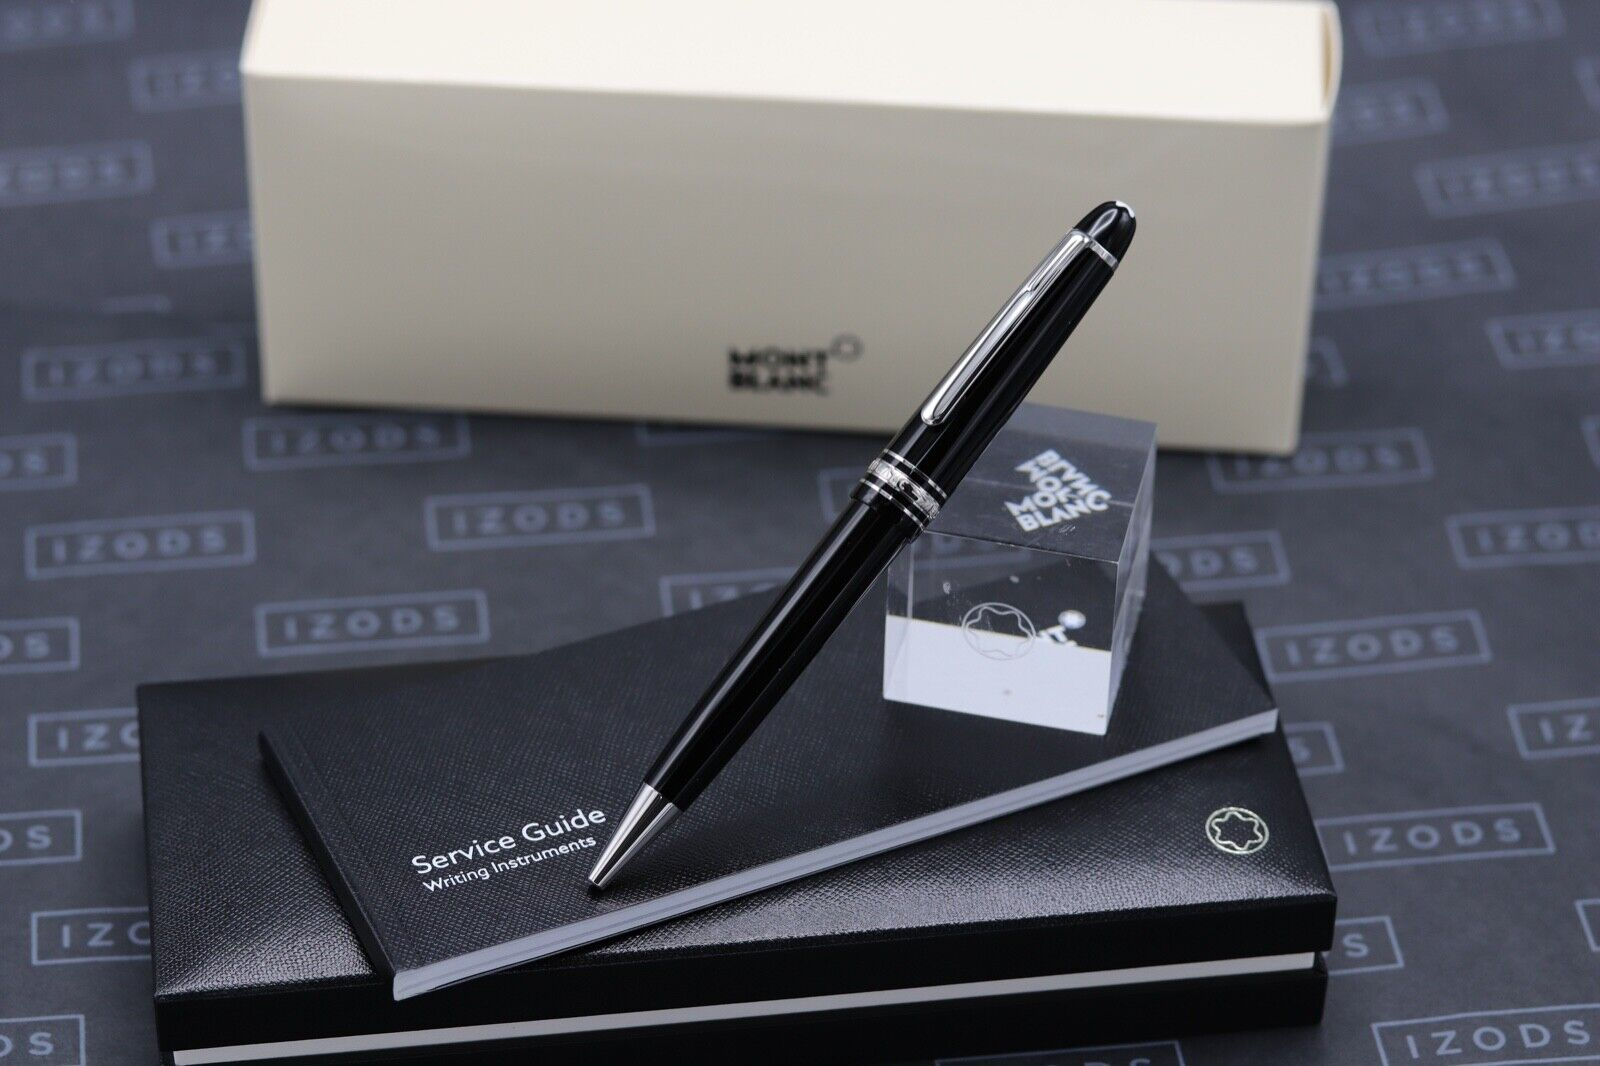 Montblanc Meisterstuck Midsize Platinum Ballpoint Pen - NEW March 2021